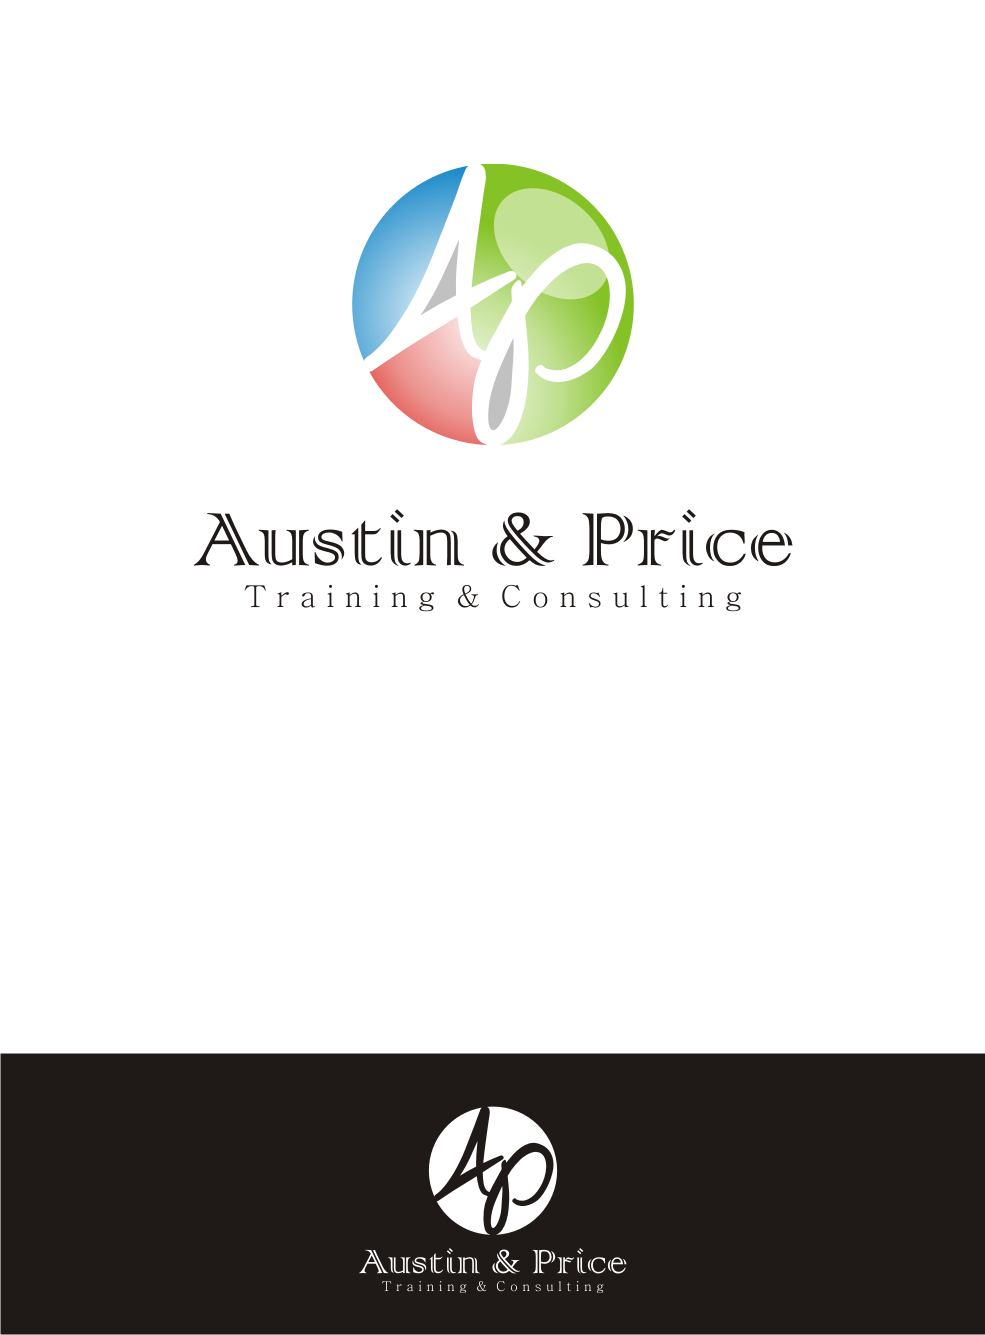 Logo Design by Nthus Nthis - Entry No. 116 in the Logo Design Contest Artistic Logo Design for Austin Price Advisory.